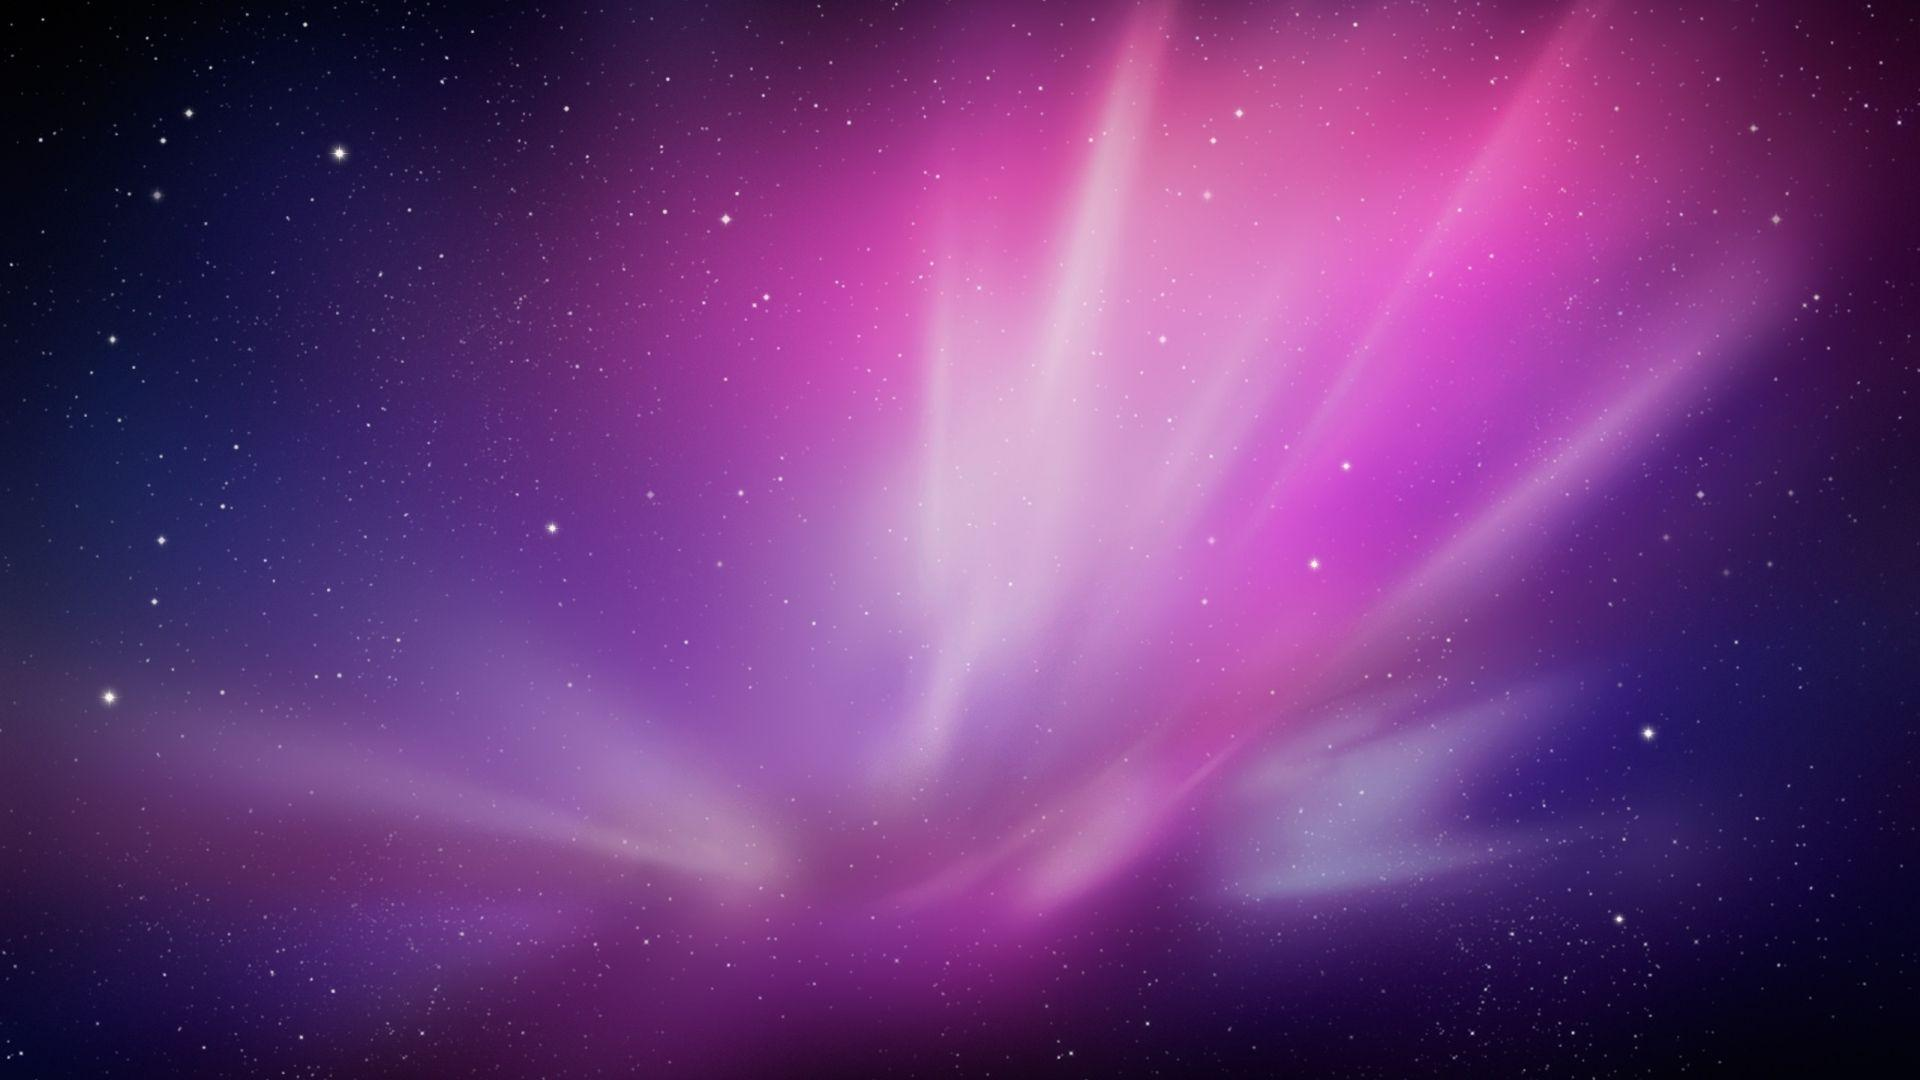 High Resolution Wallpapers For Mac Os X